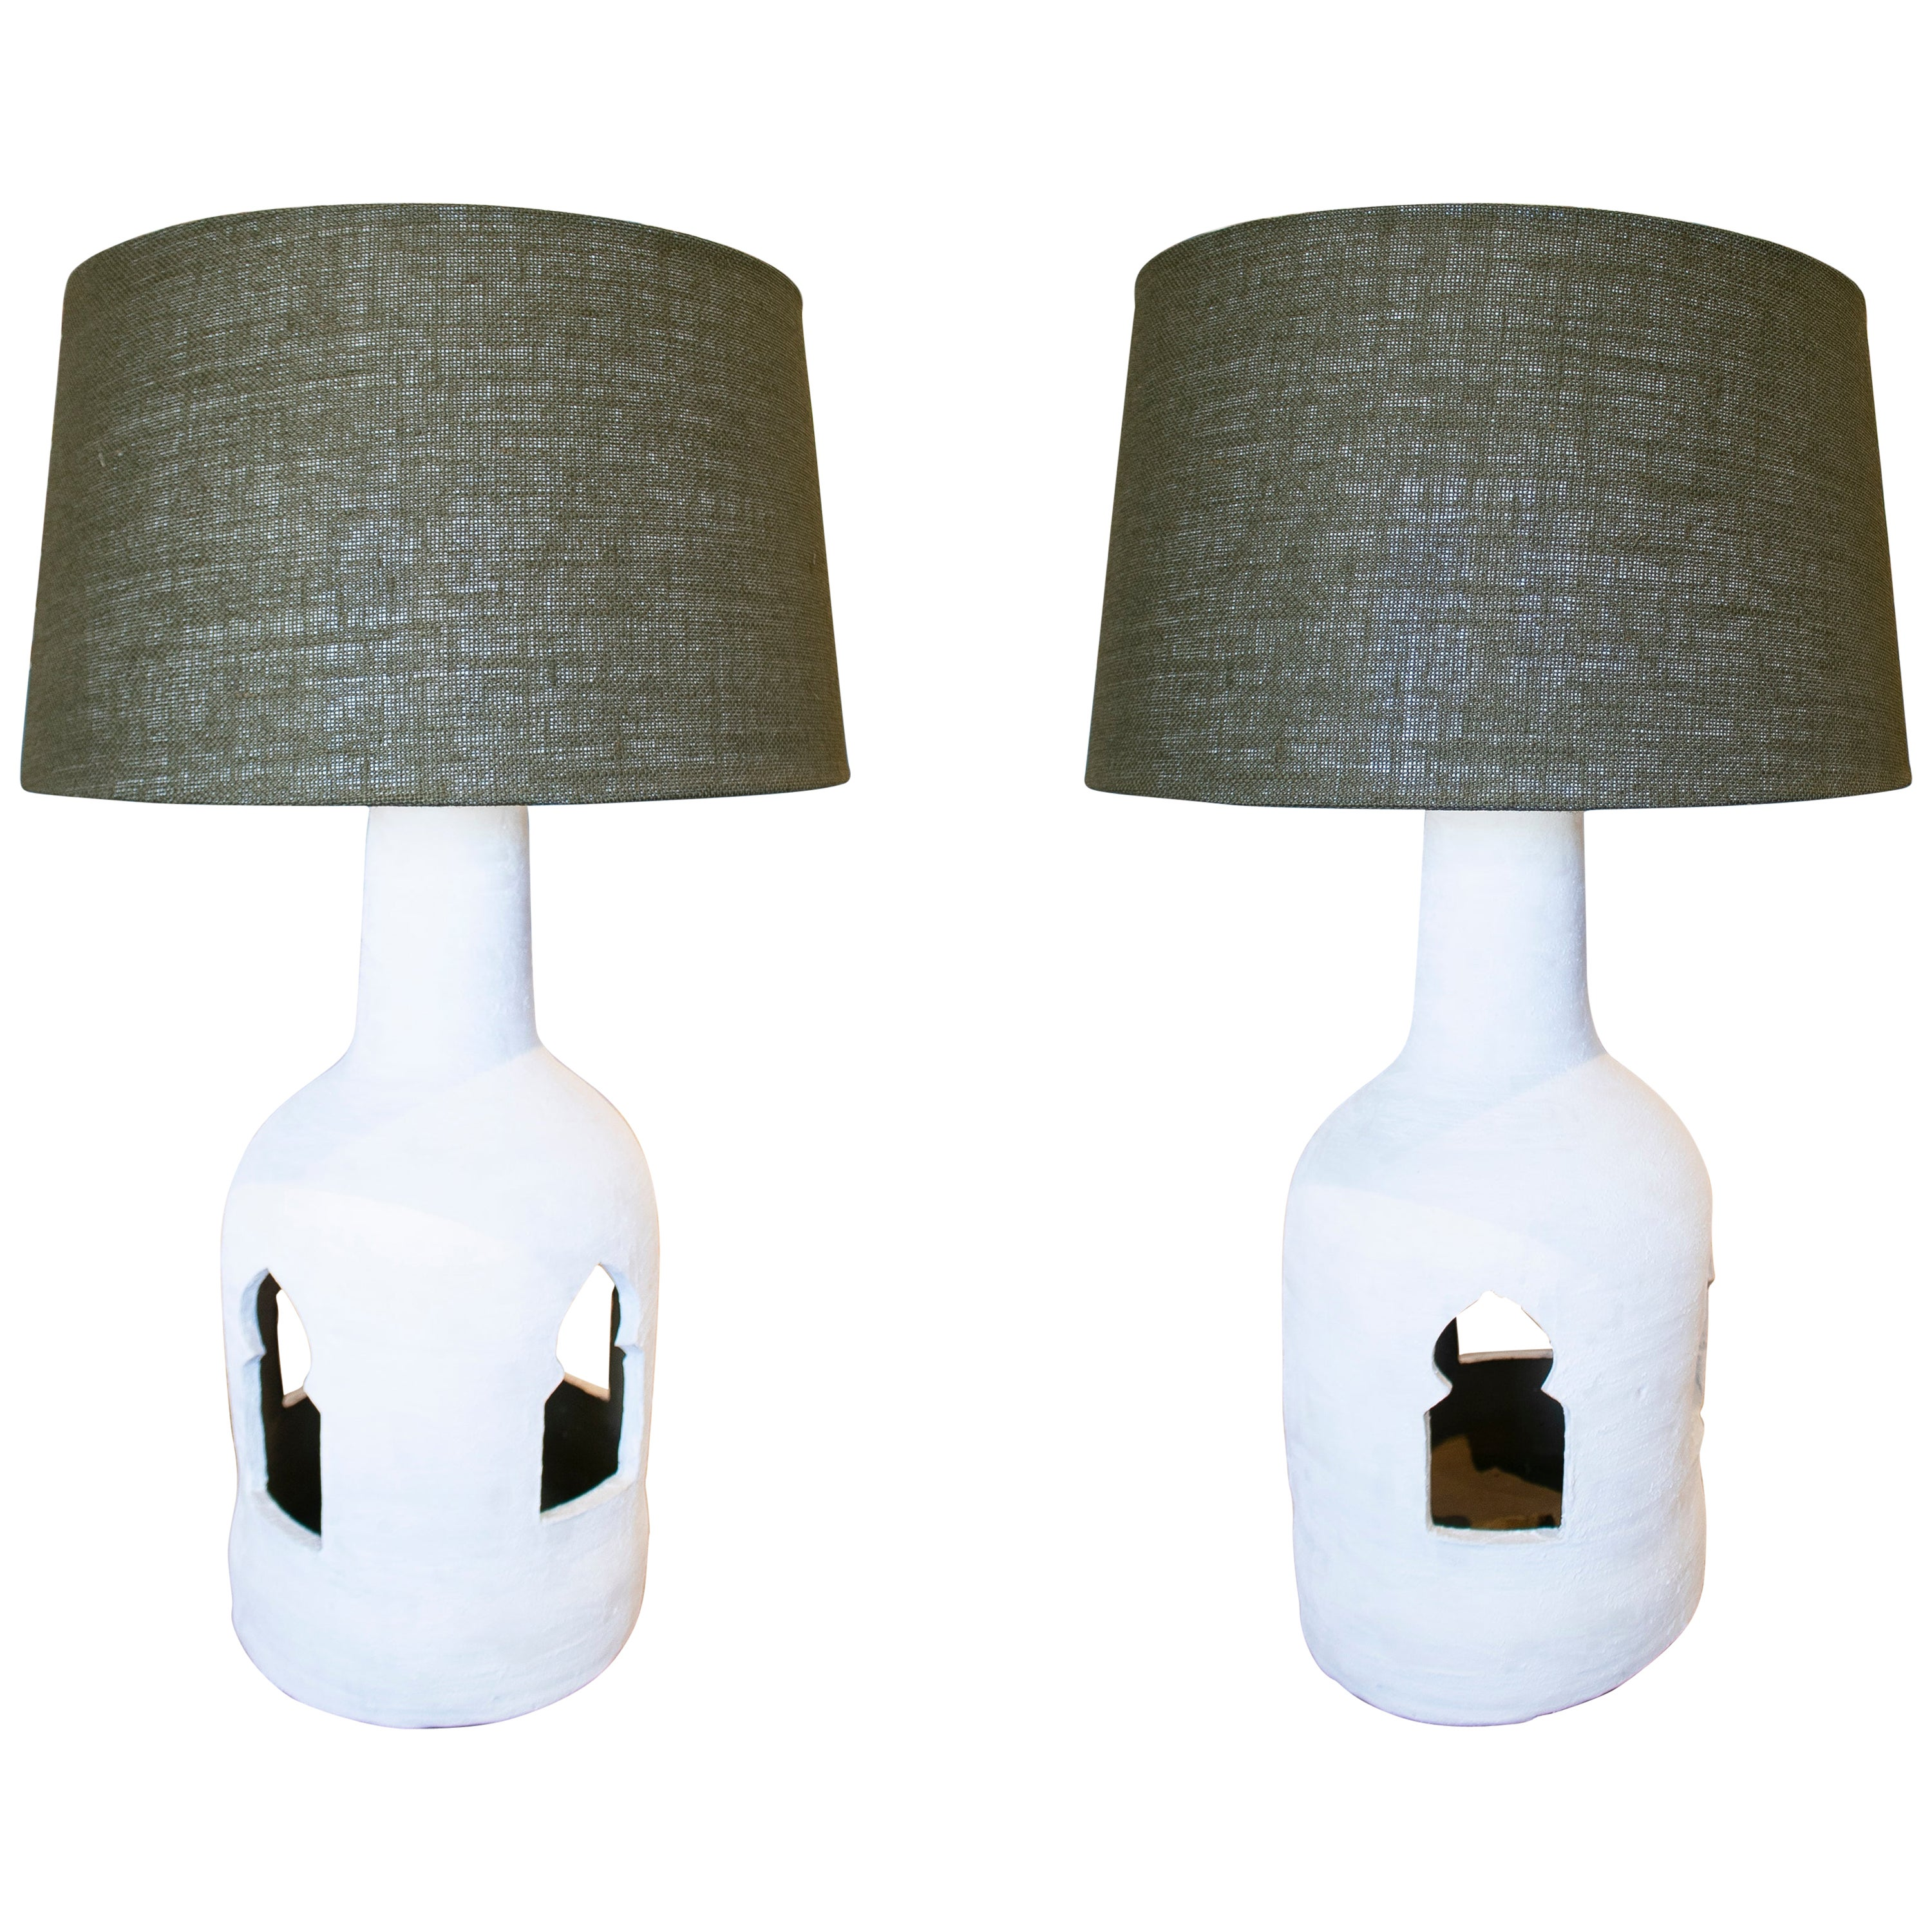 1970s Pair of Spanish Ceramic Table Lamps Painted in Chalk White